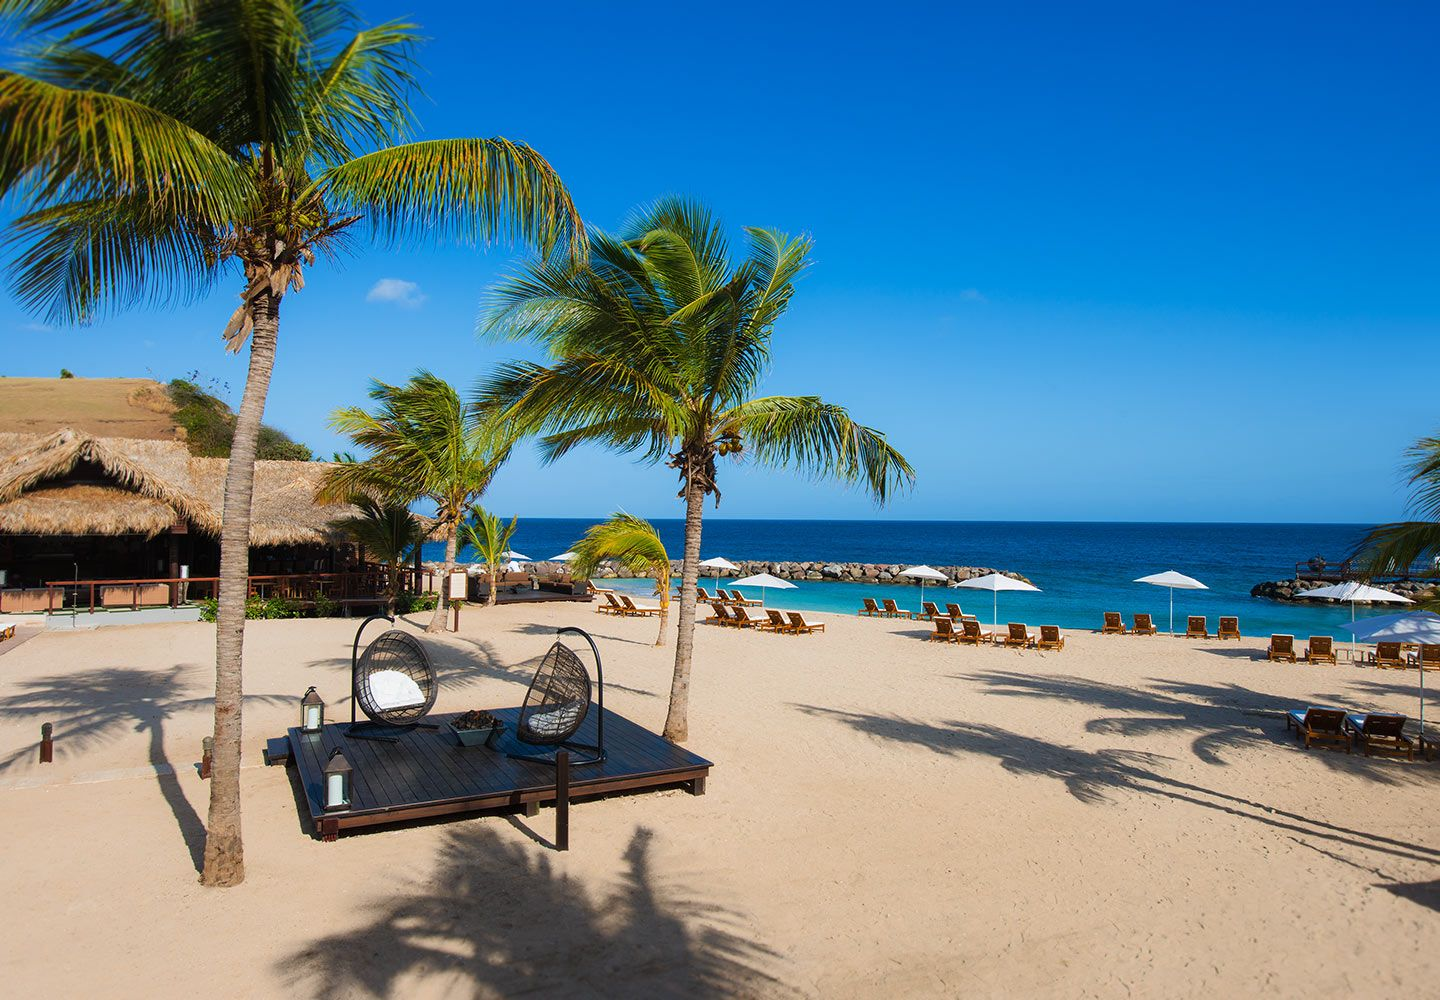 Soak Up The Sun On The Beach Relax By The Fire Pits Or Enjoy